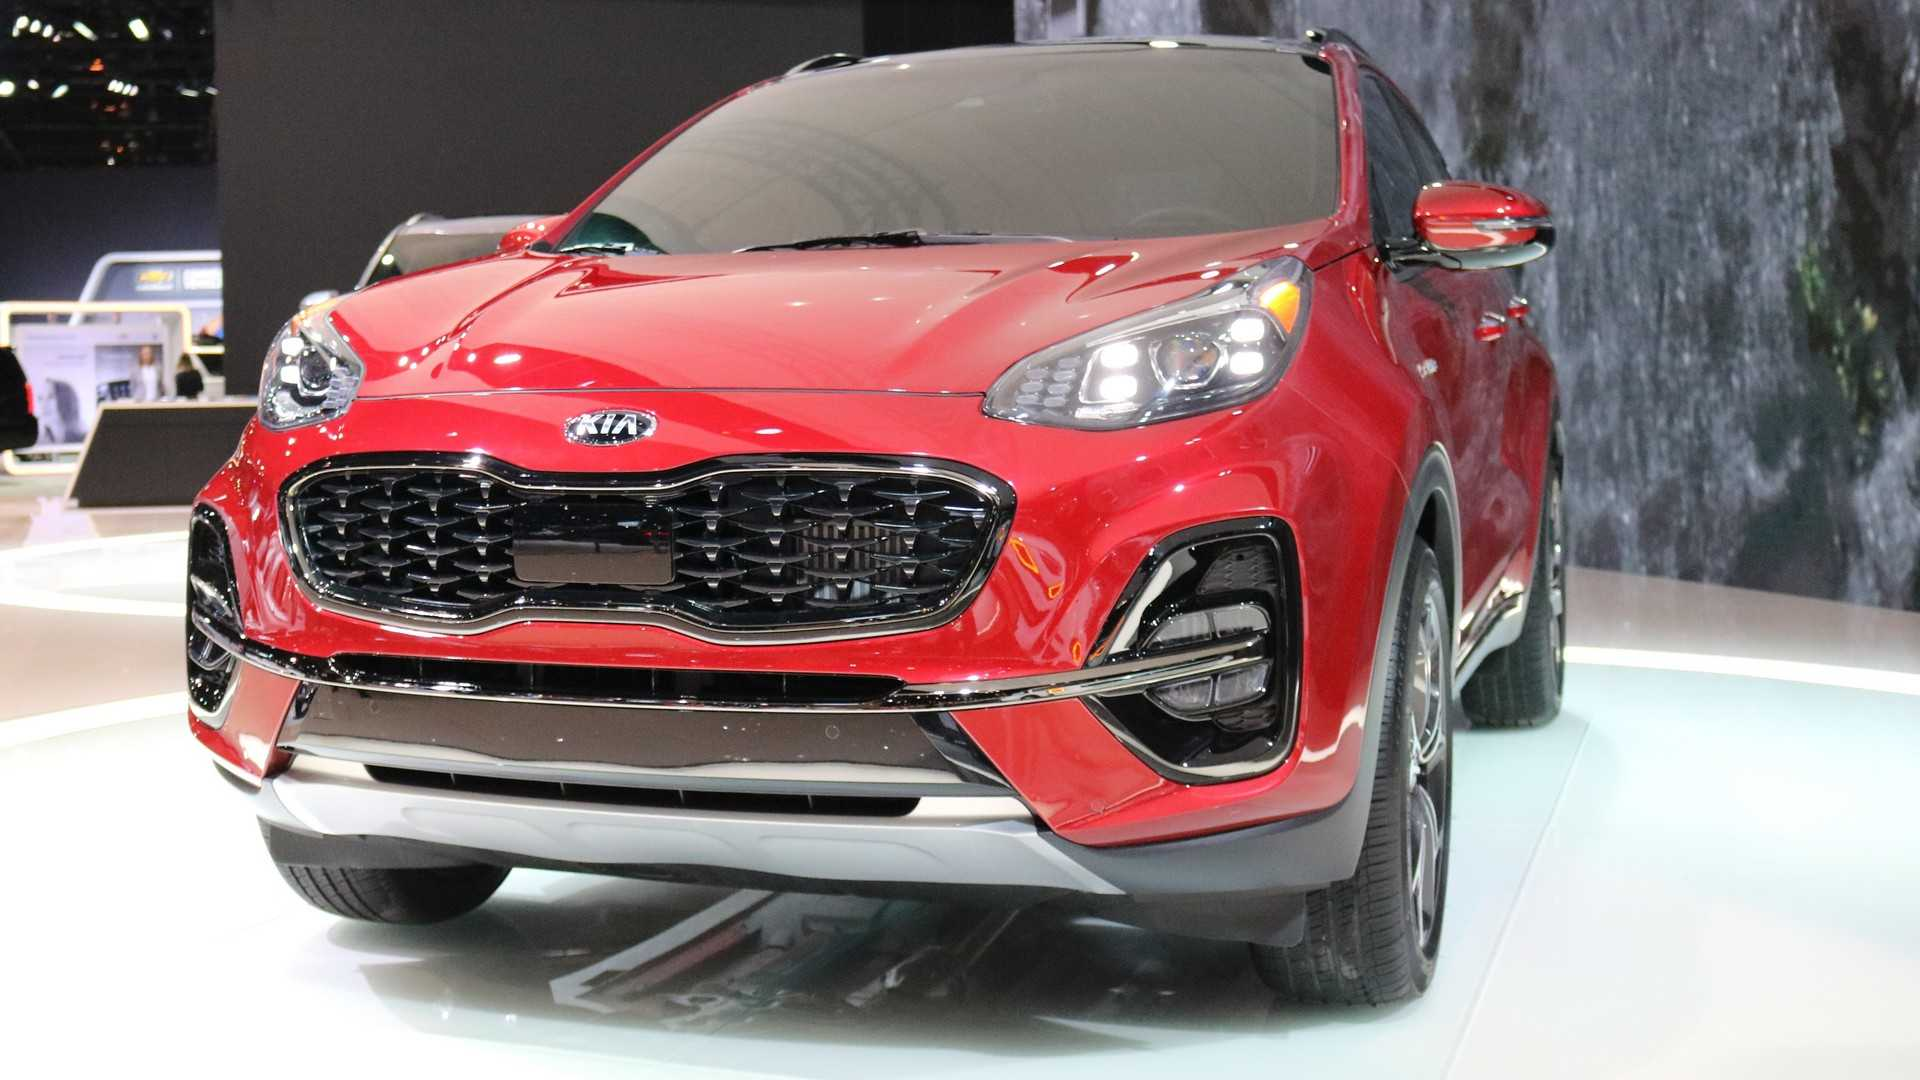 2020 Kia Sportage Debuts In Chicago With Fresh Face, More Tech